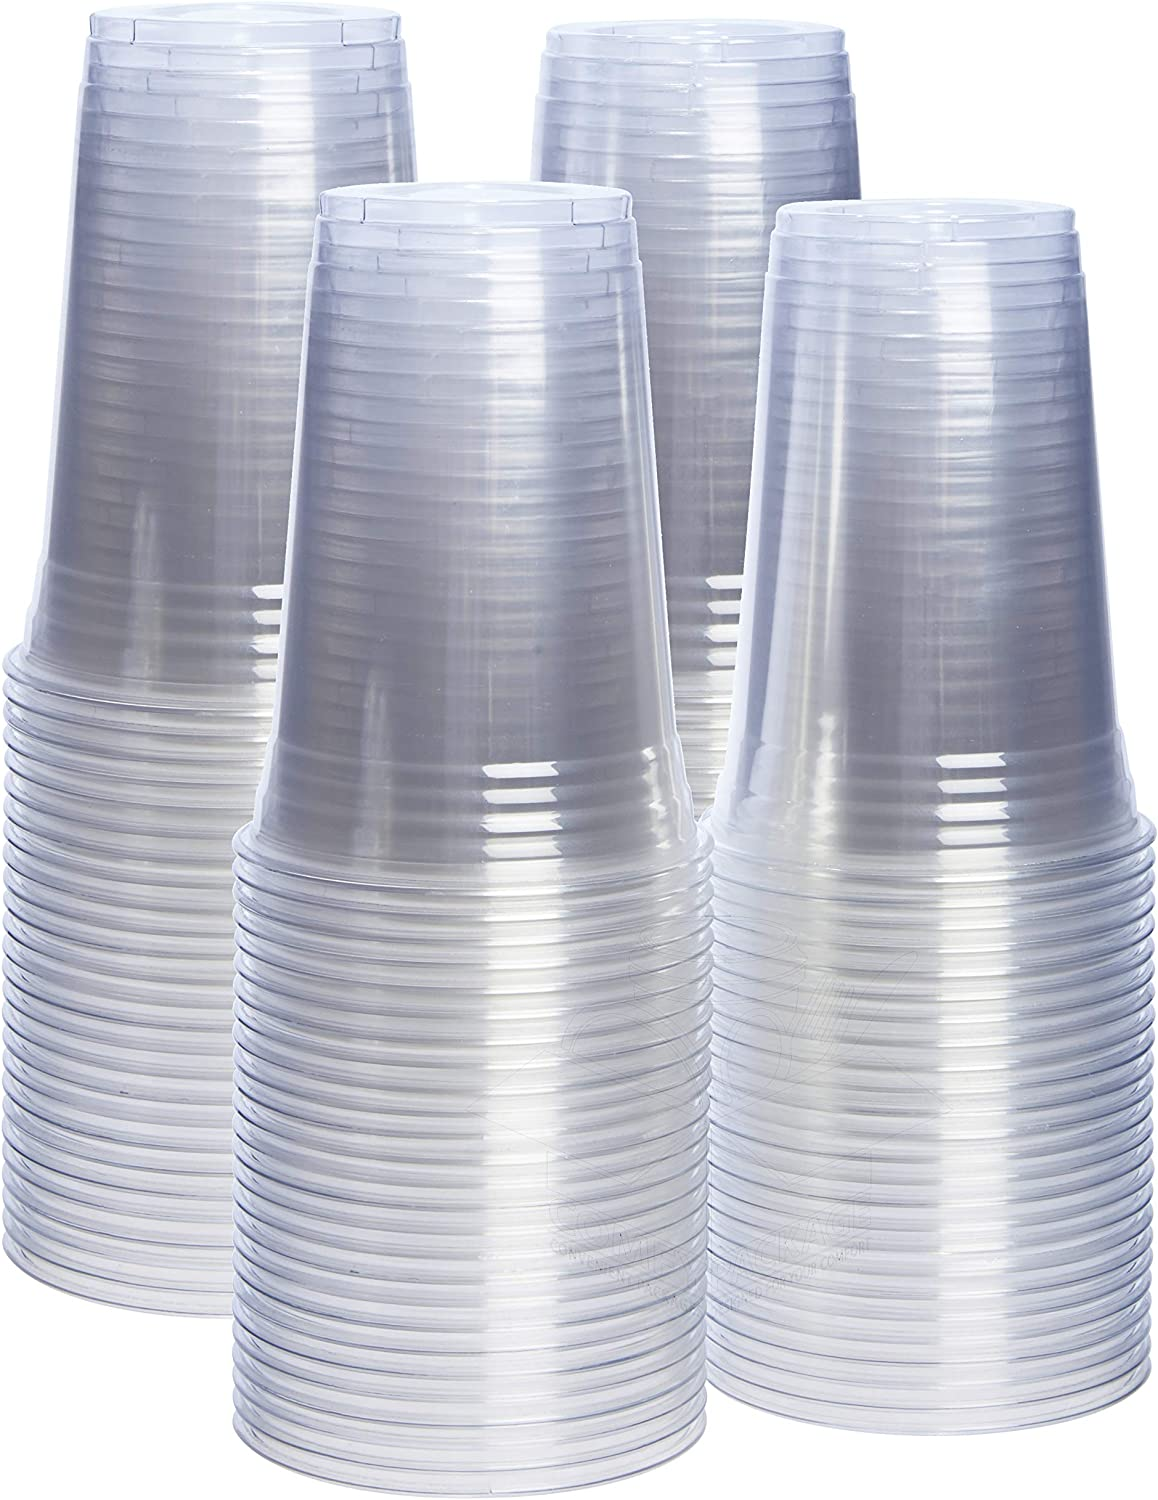 [100 Pack - 20 oz.] Crystal Clear PET Plastic Cups